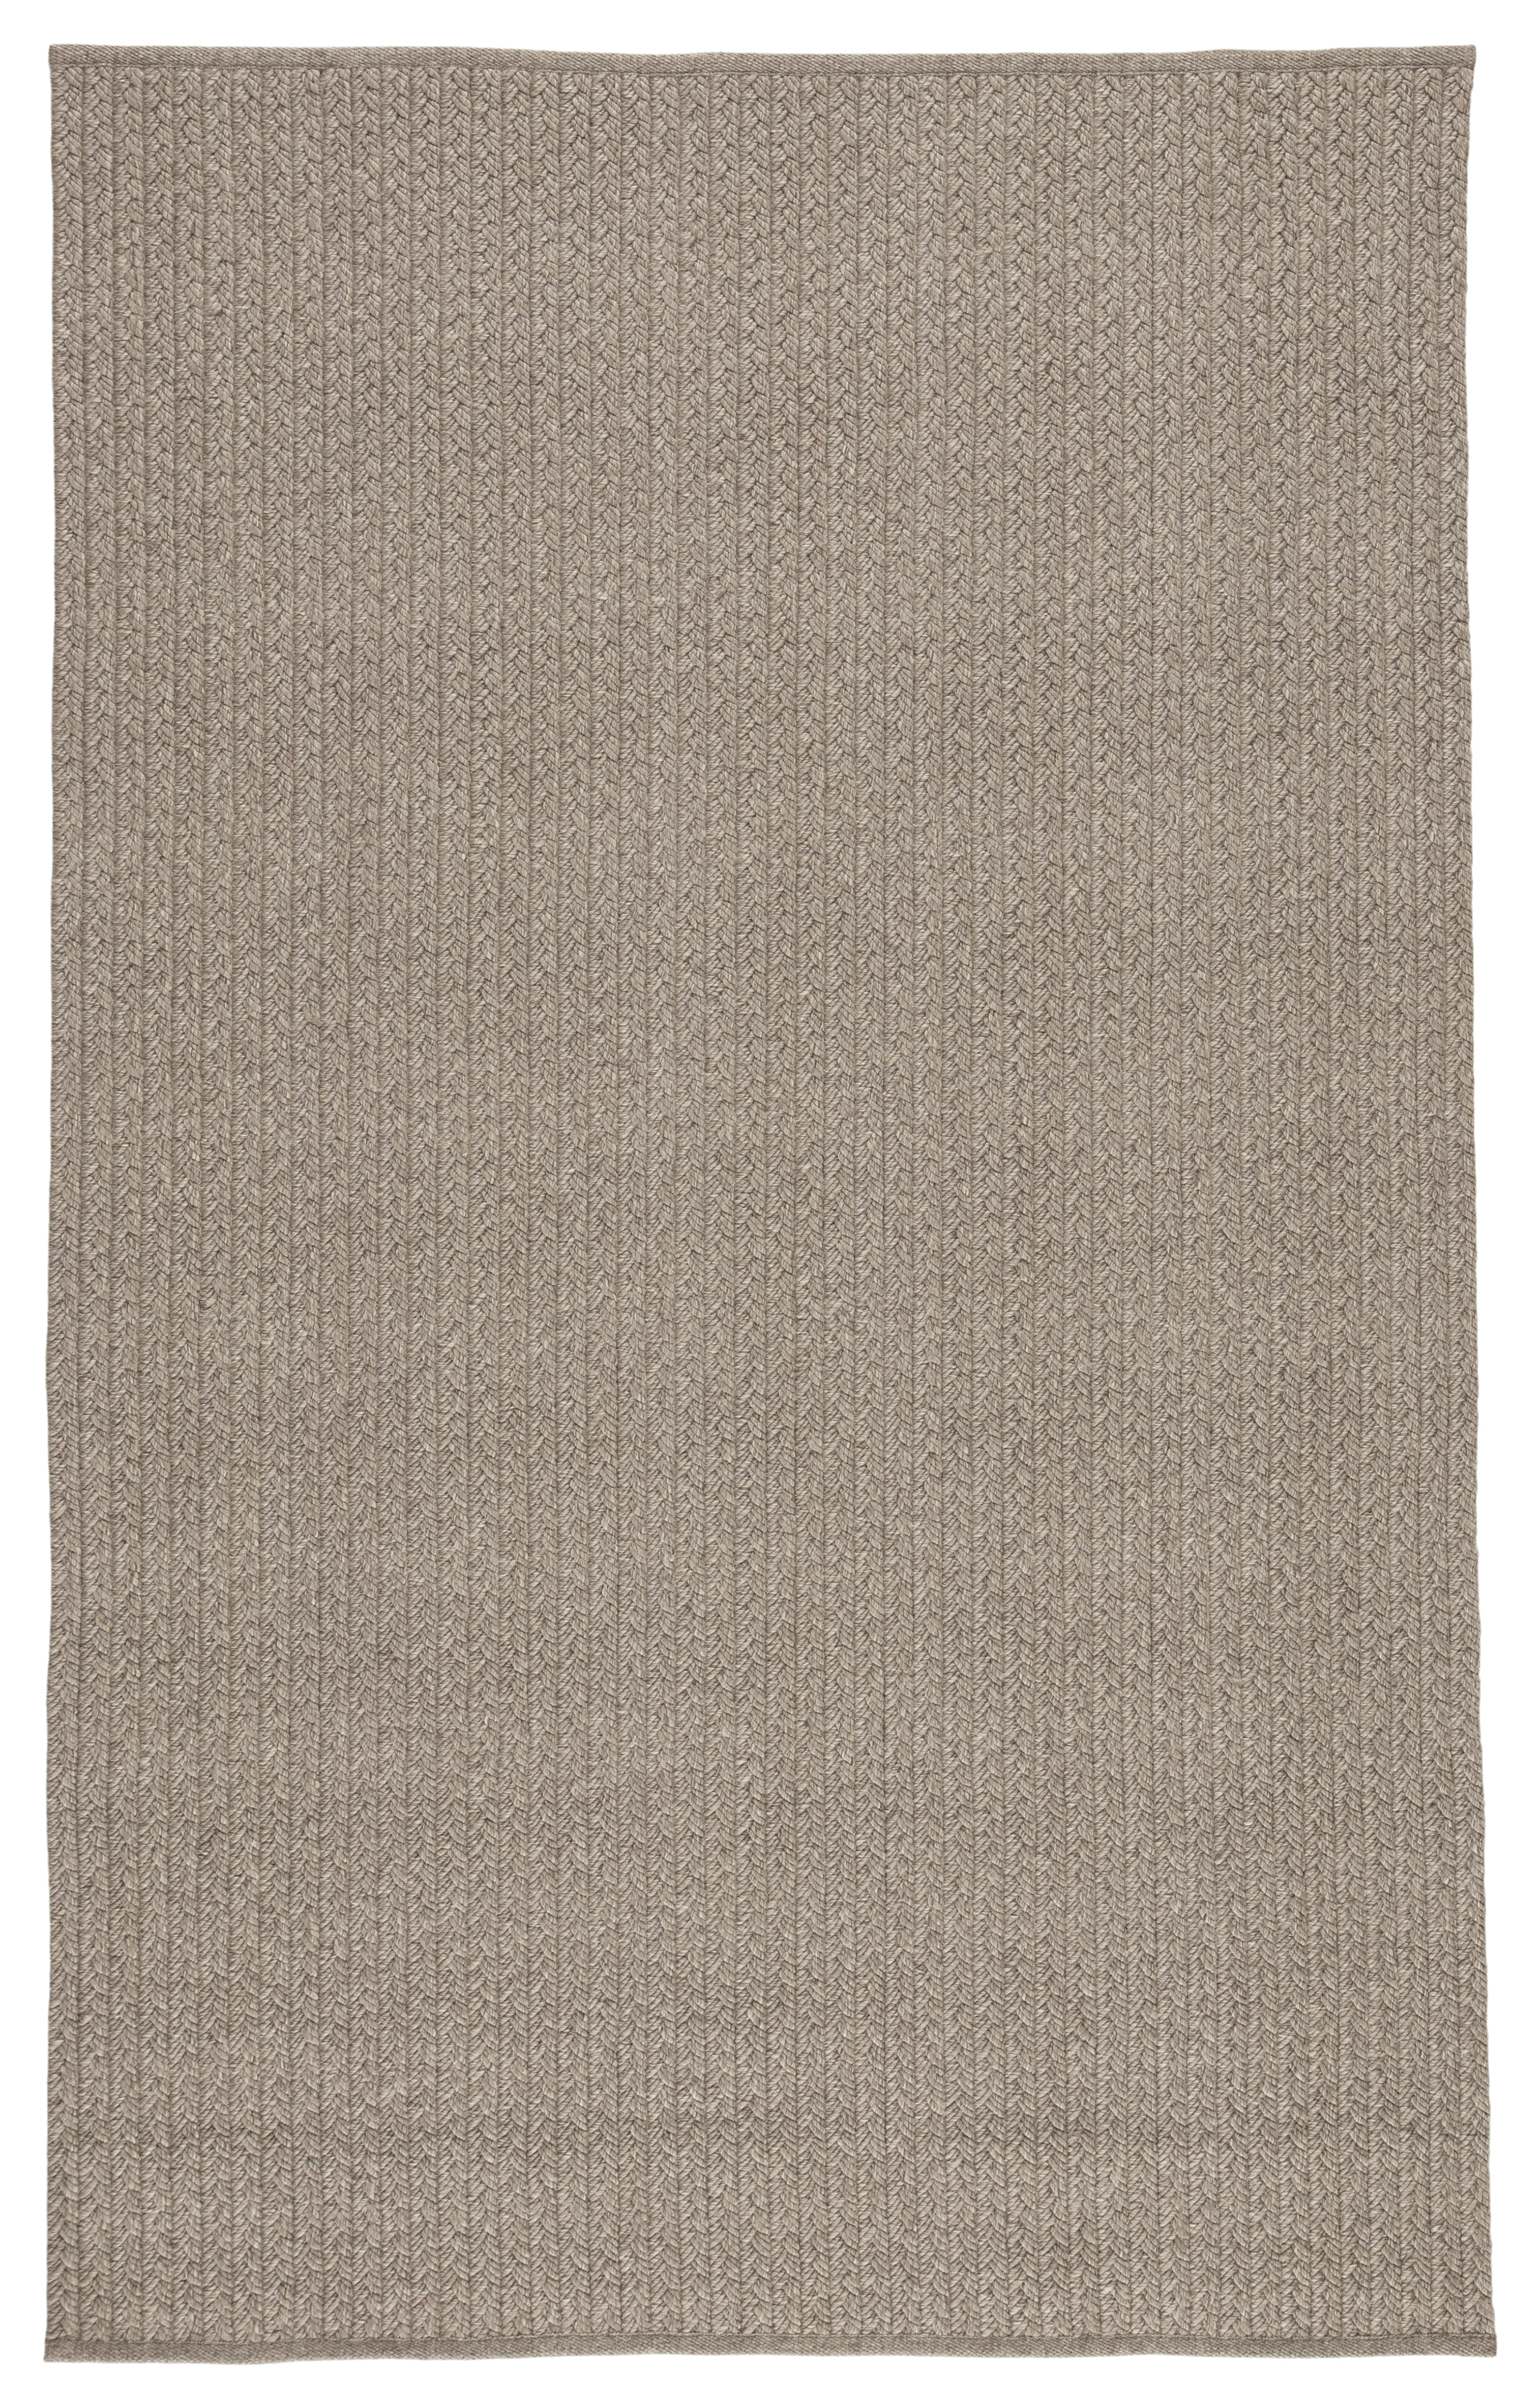 Jaipur Living Iver Indoor/ Outdoor Solid Gray Area Rug